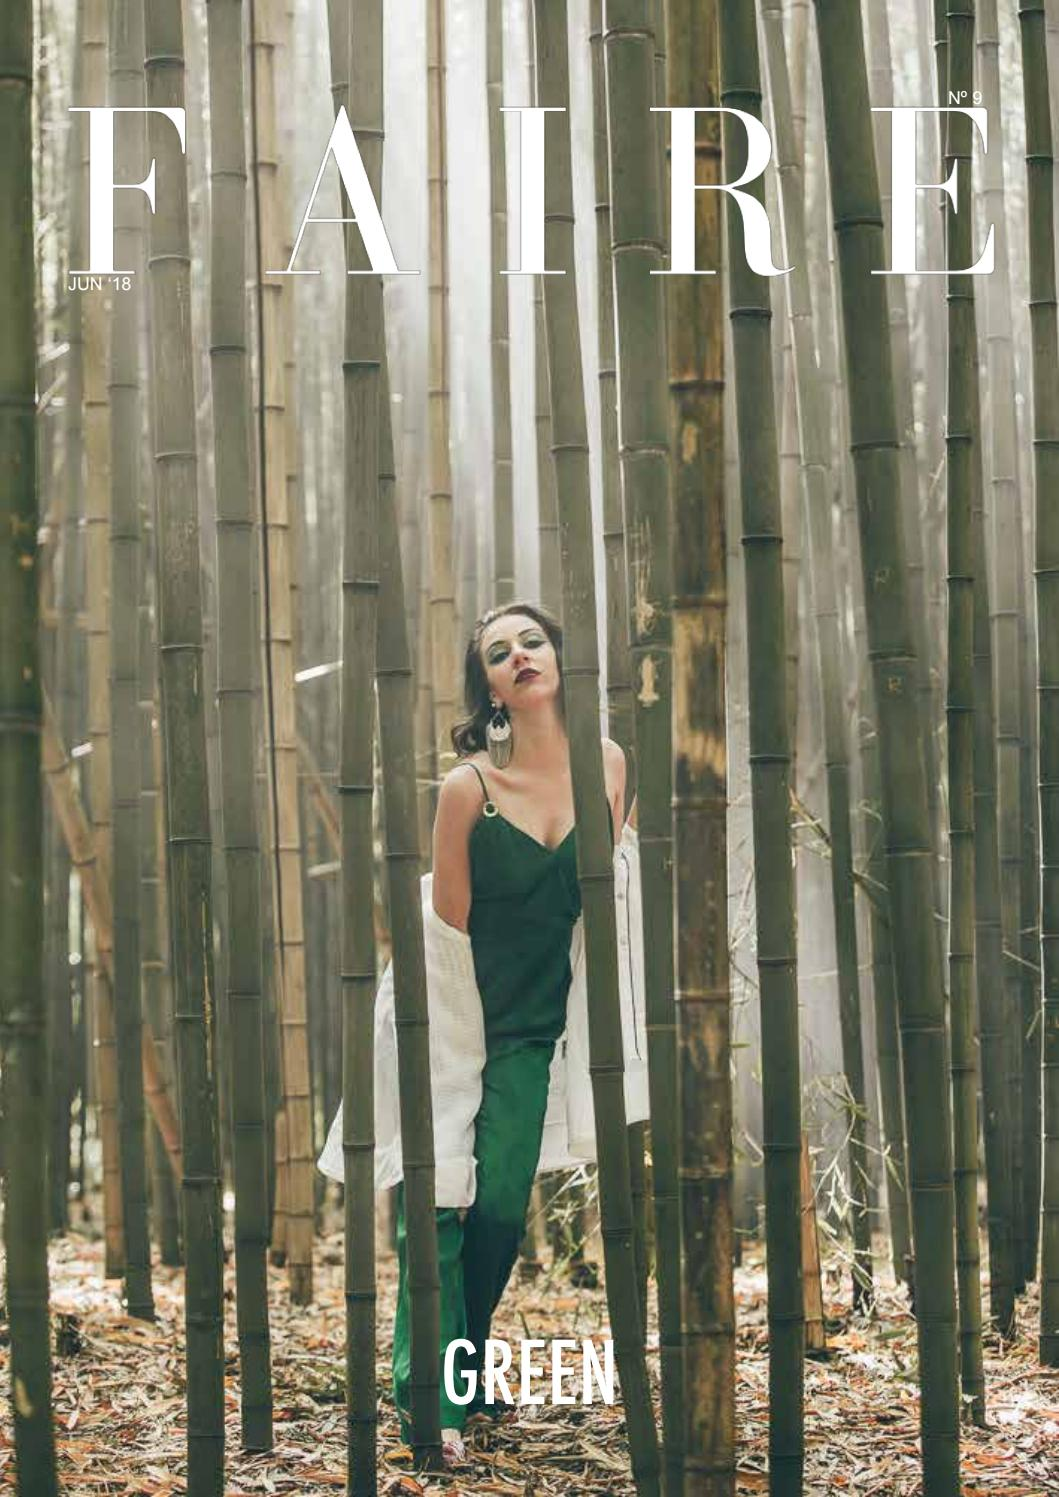 afe7f0d8c9249b 9 GREEN EDITION - 2ªCAPA by FAIRE MAGAZINE - issuu